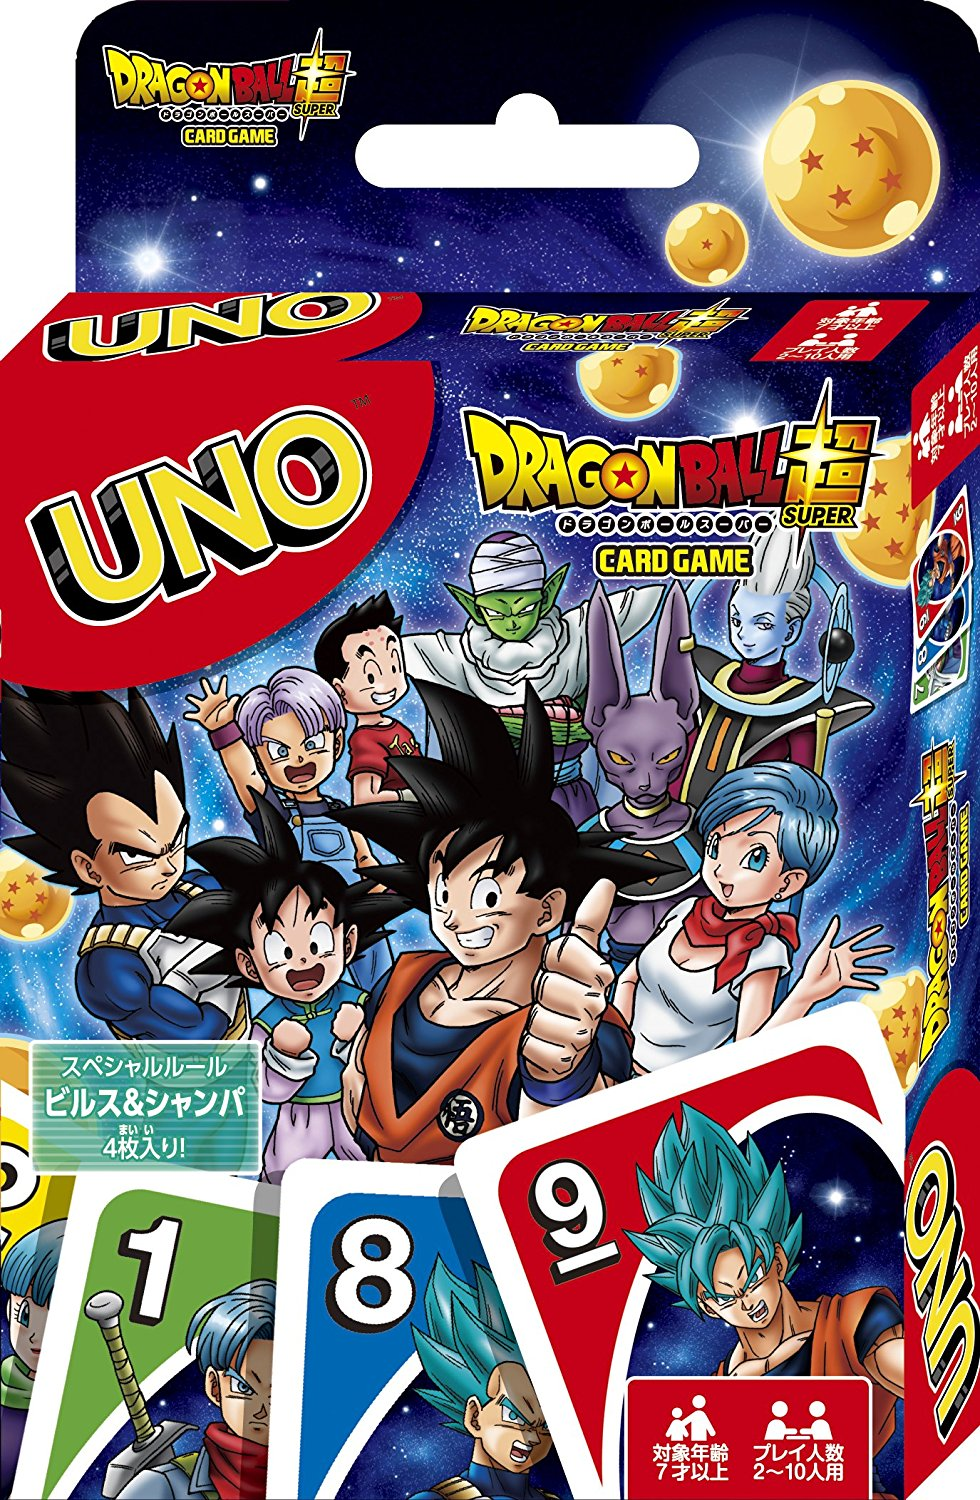 Jeux de cartes dragon ball japanfigs - Jeux info dragon ball z ...